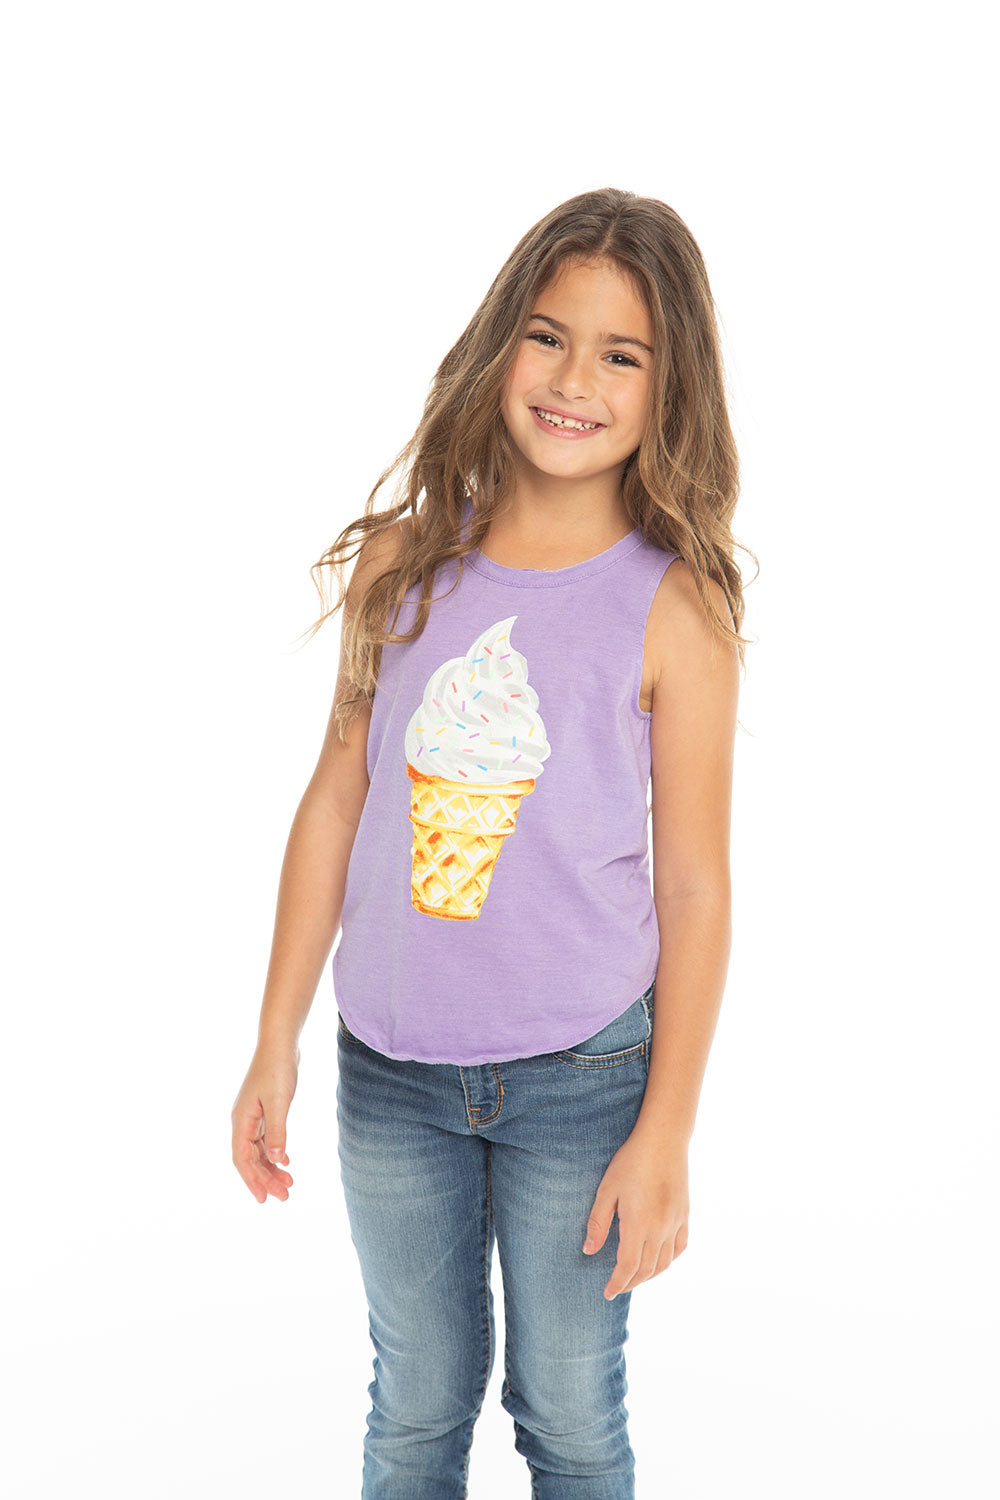 bd2c60833 Sprinkles Ice Cream, Girls, chaserbrand.com,chaser clothing,chaser apparel,